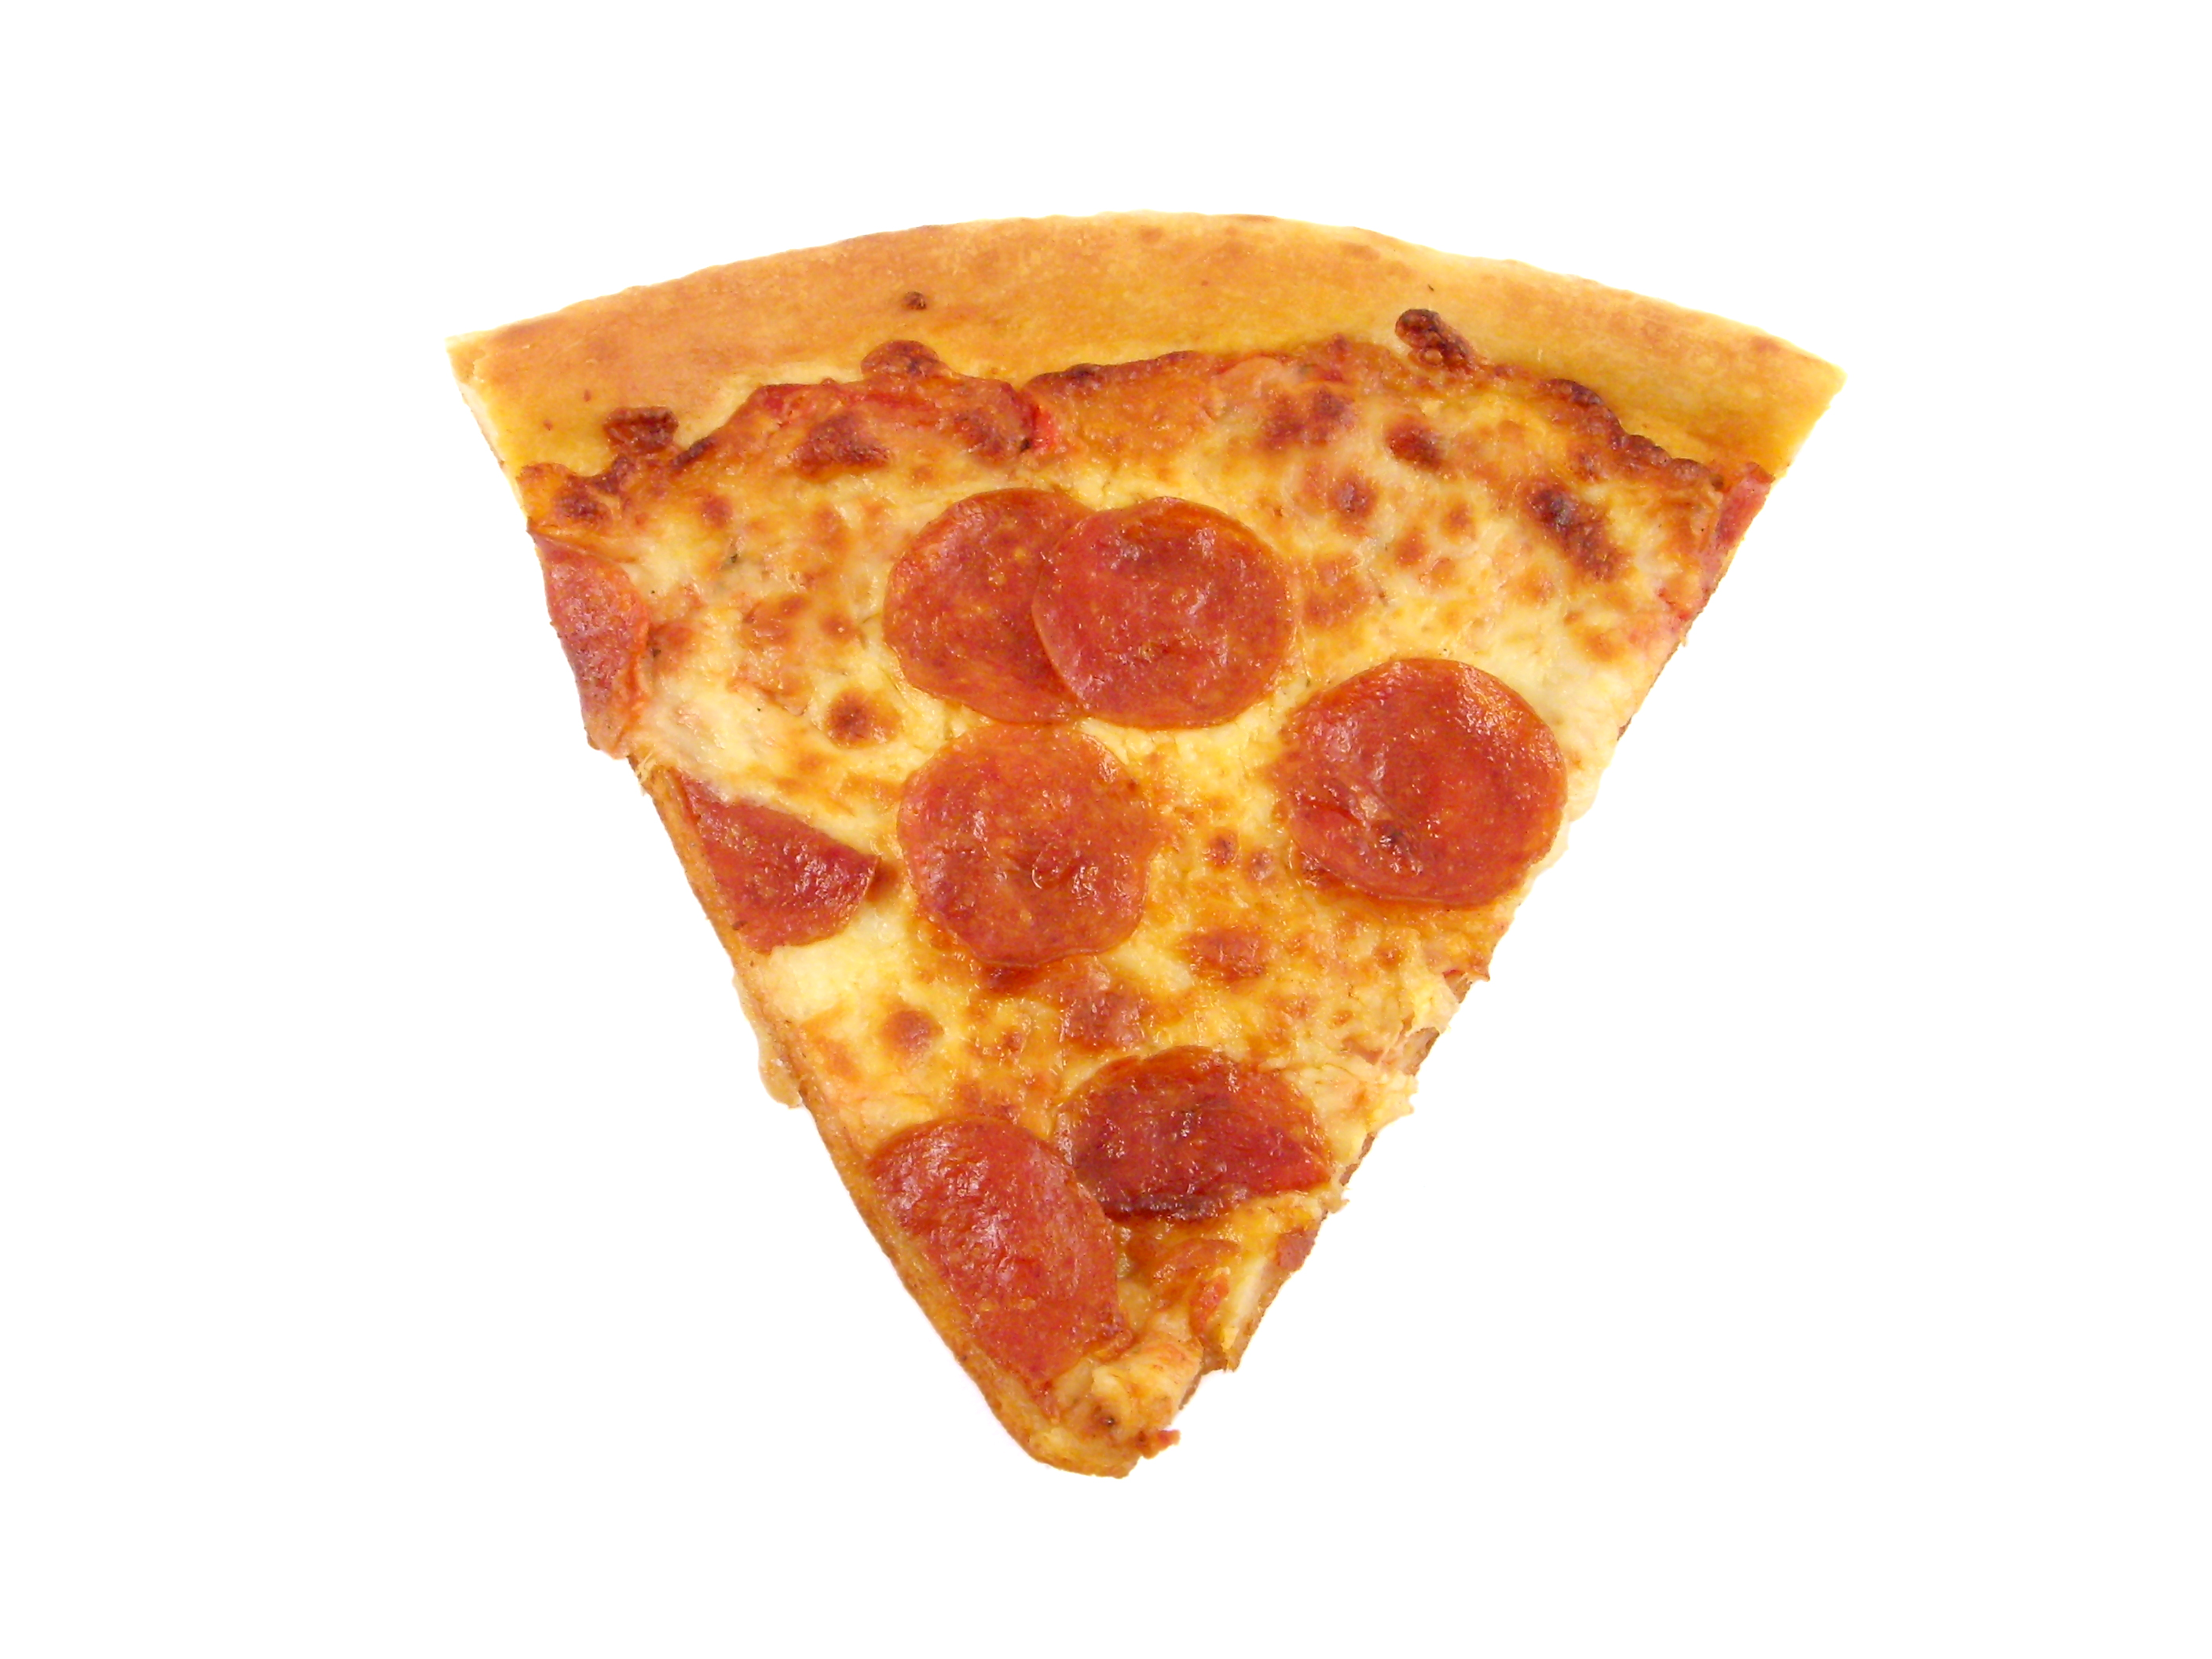 2816x2112 Cheese Pizza Pizza Slice Free Images